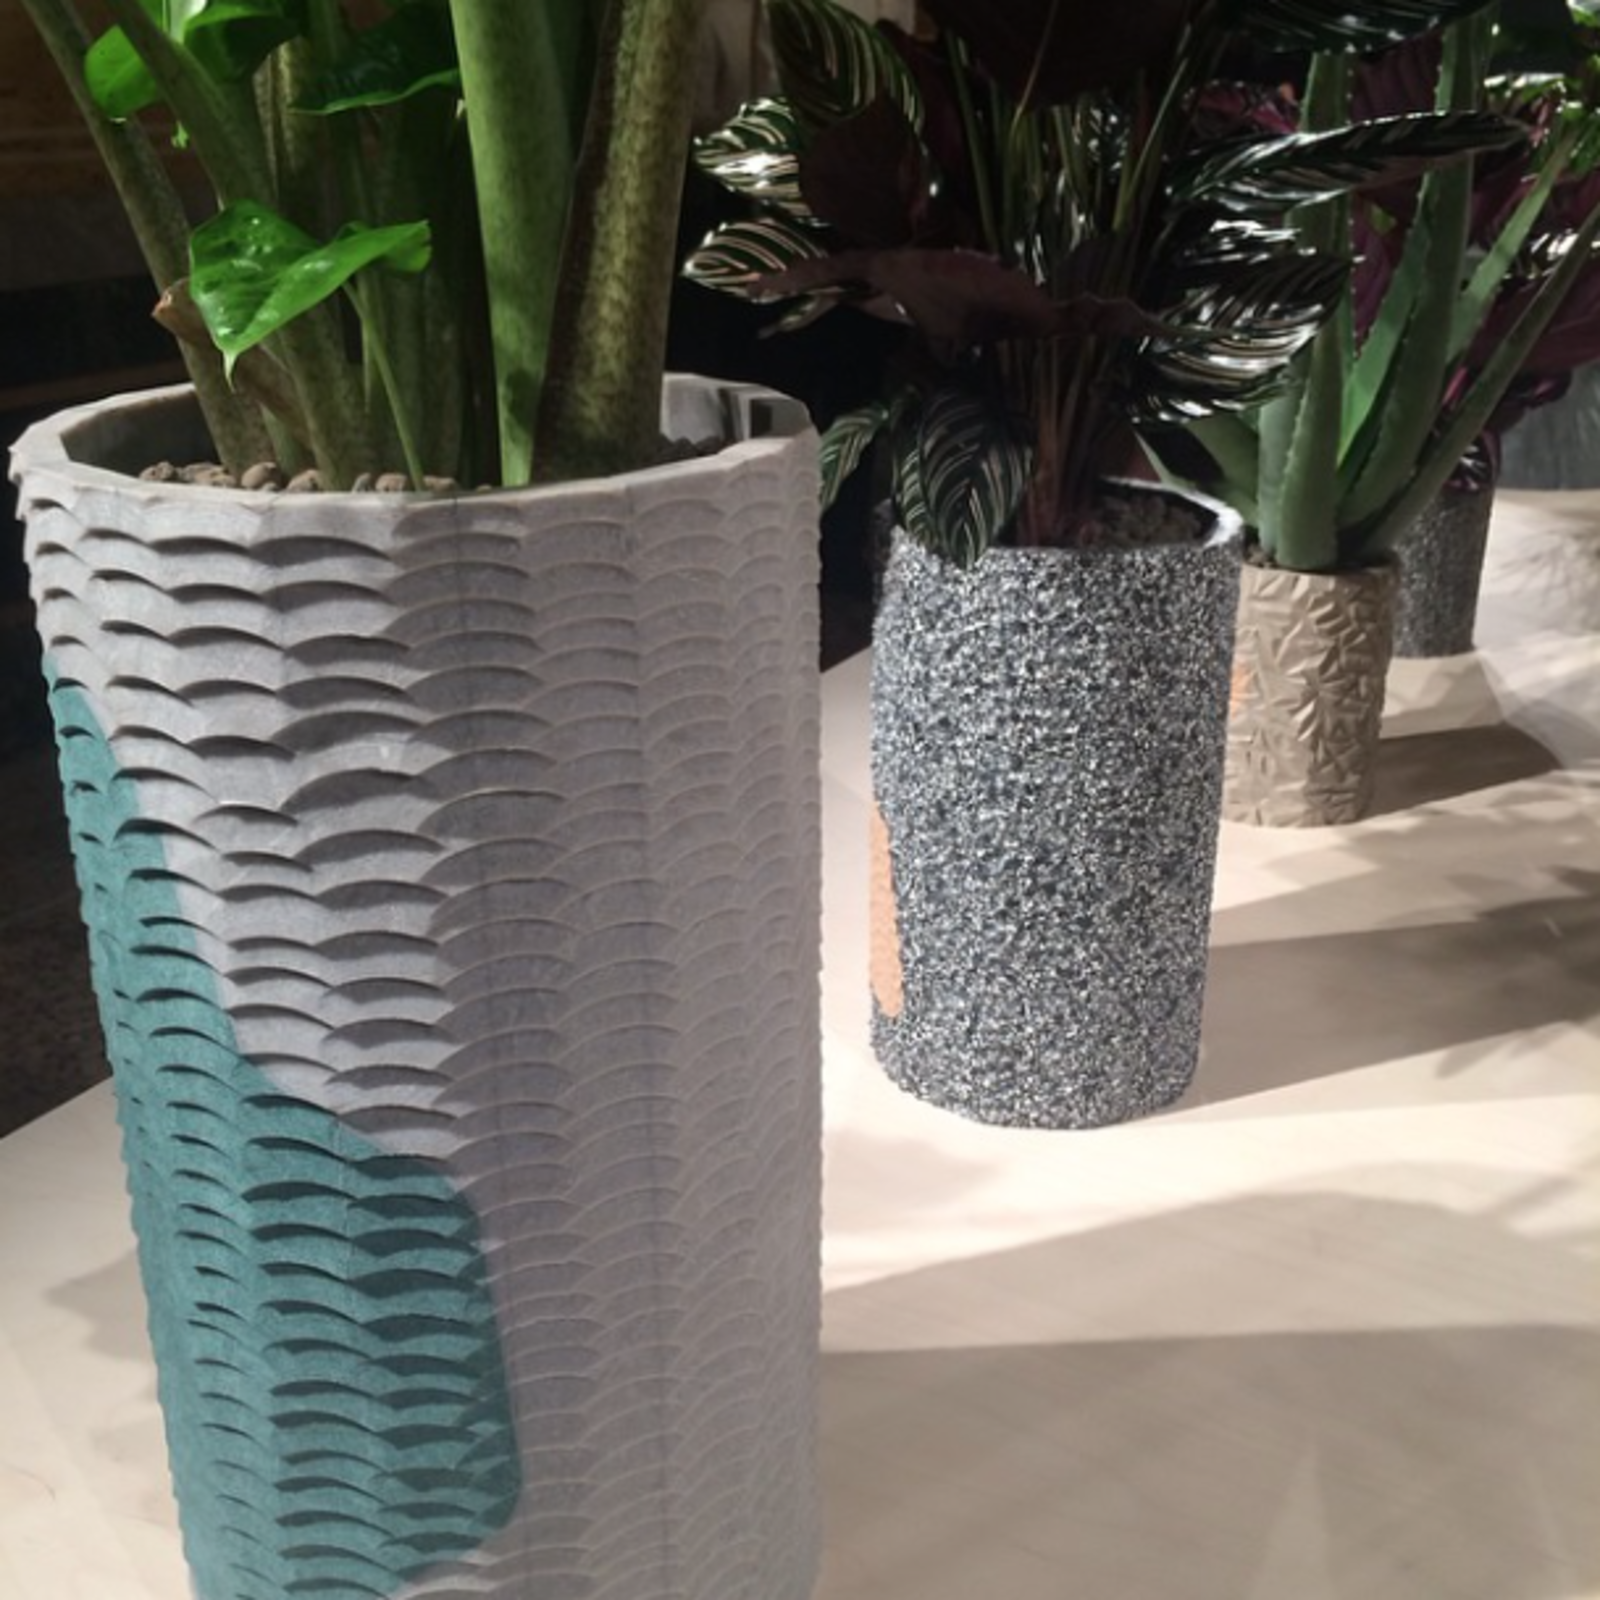 Selection of planters by Philippe Malouin, using inlaying and stone-carving techniques on Caesarstone.  Editors' Picks from Salone del Mobile 2015: Day One by Dwell